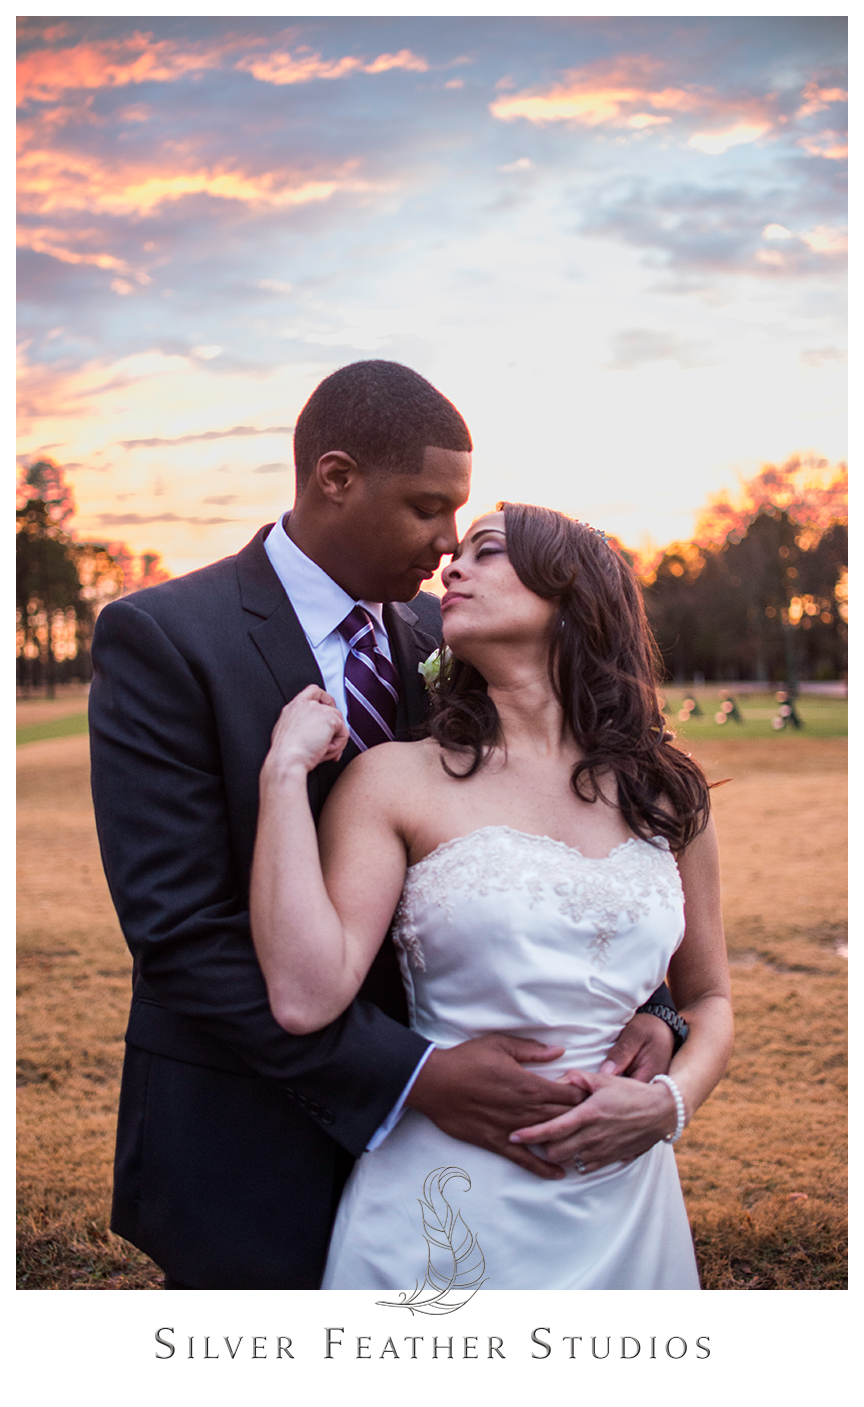 Marcellus and Lisa pose together outside their Bryan Park Conference Center wedding reception. © Silver Feather Studios, Greensboro, North Carolina Wedding Photography